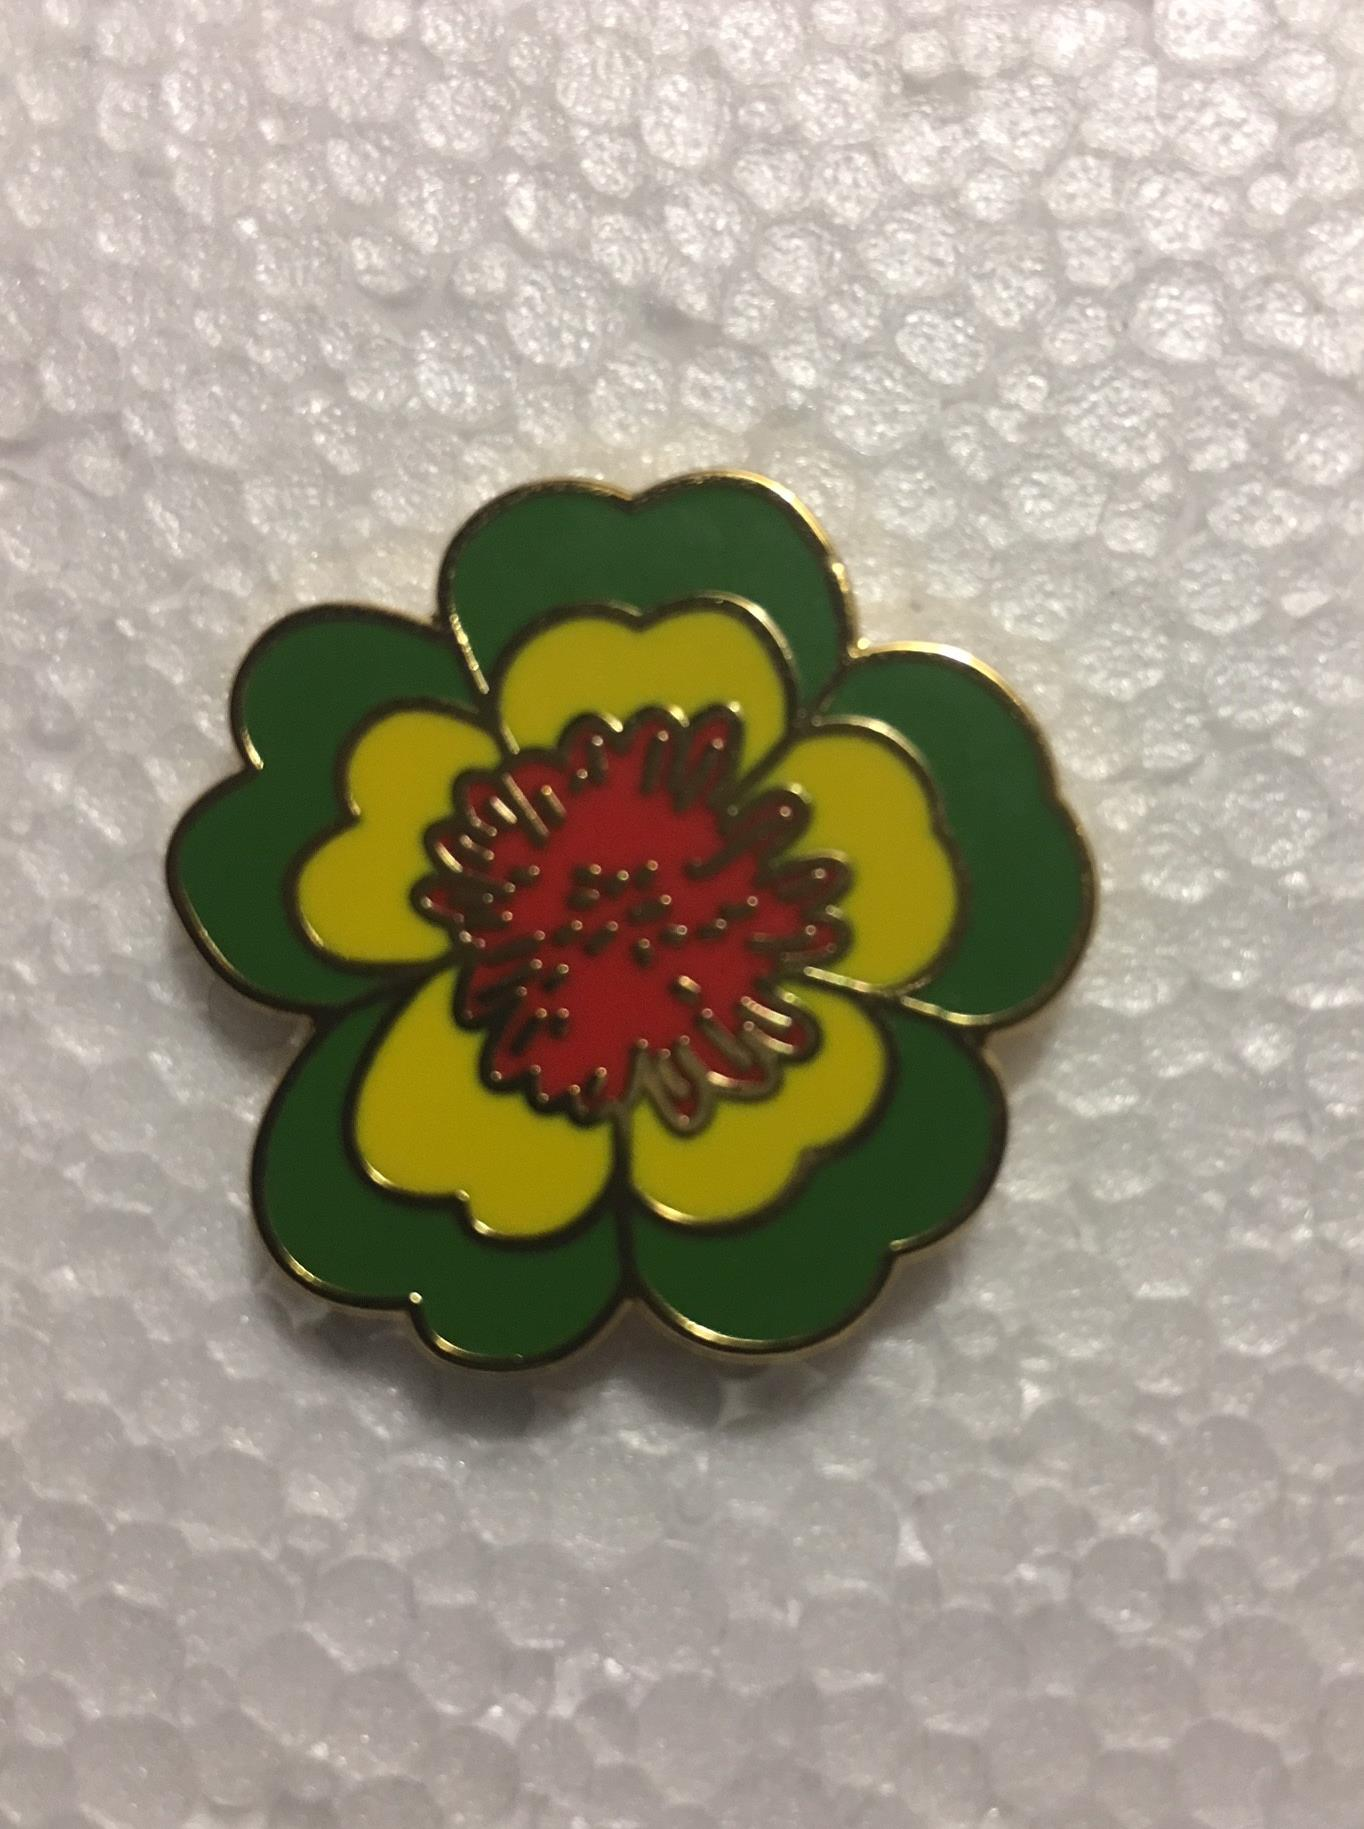 VIETNAM VETERAN POPPY FLOWER PINS